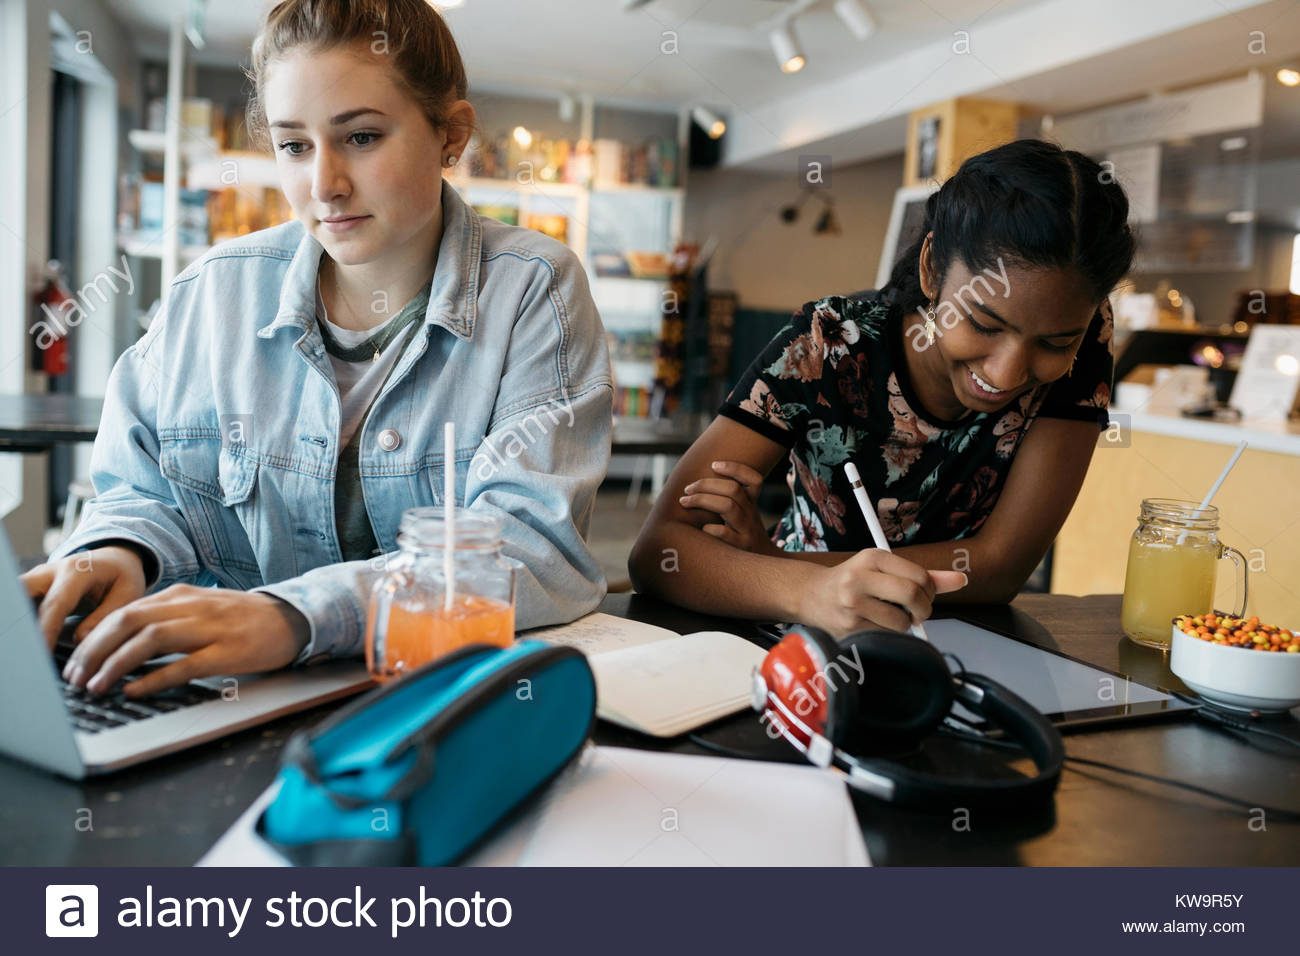 High school girl students studying,using laptop in cafe Stock Photo